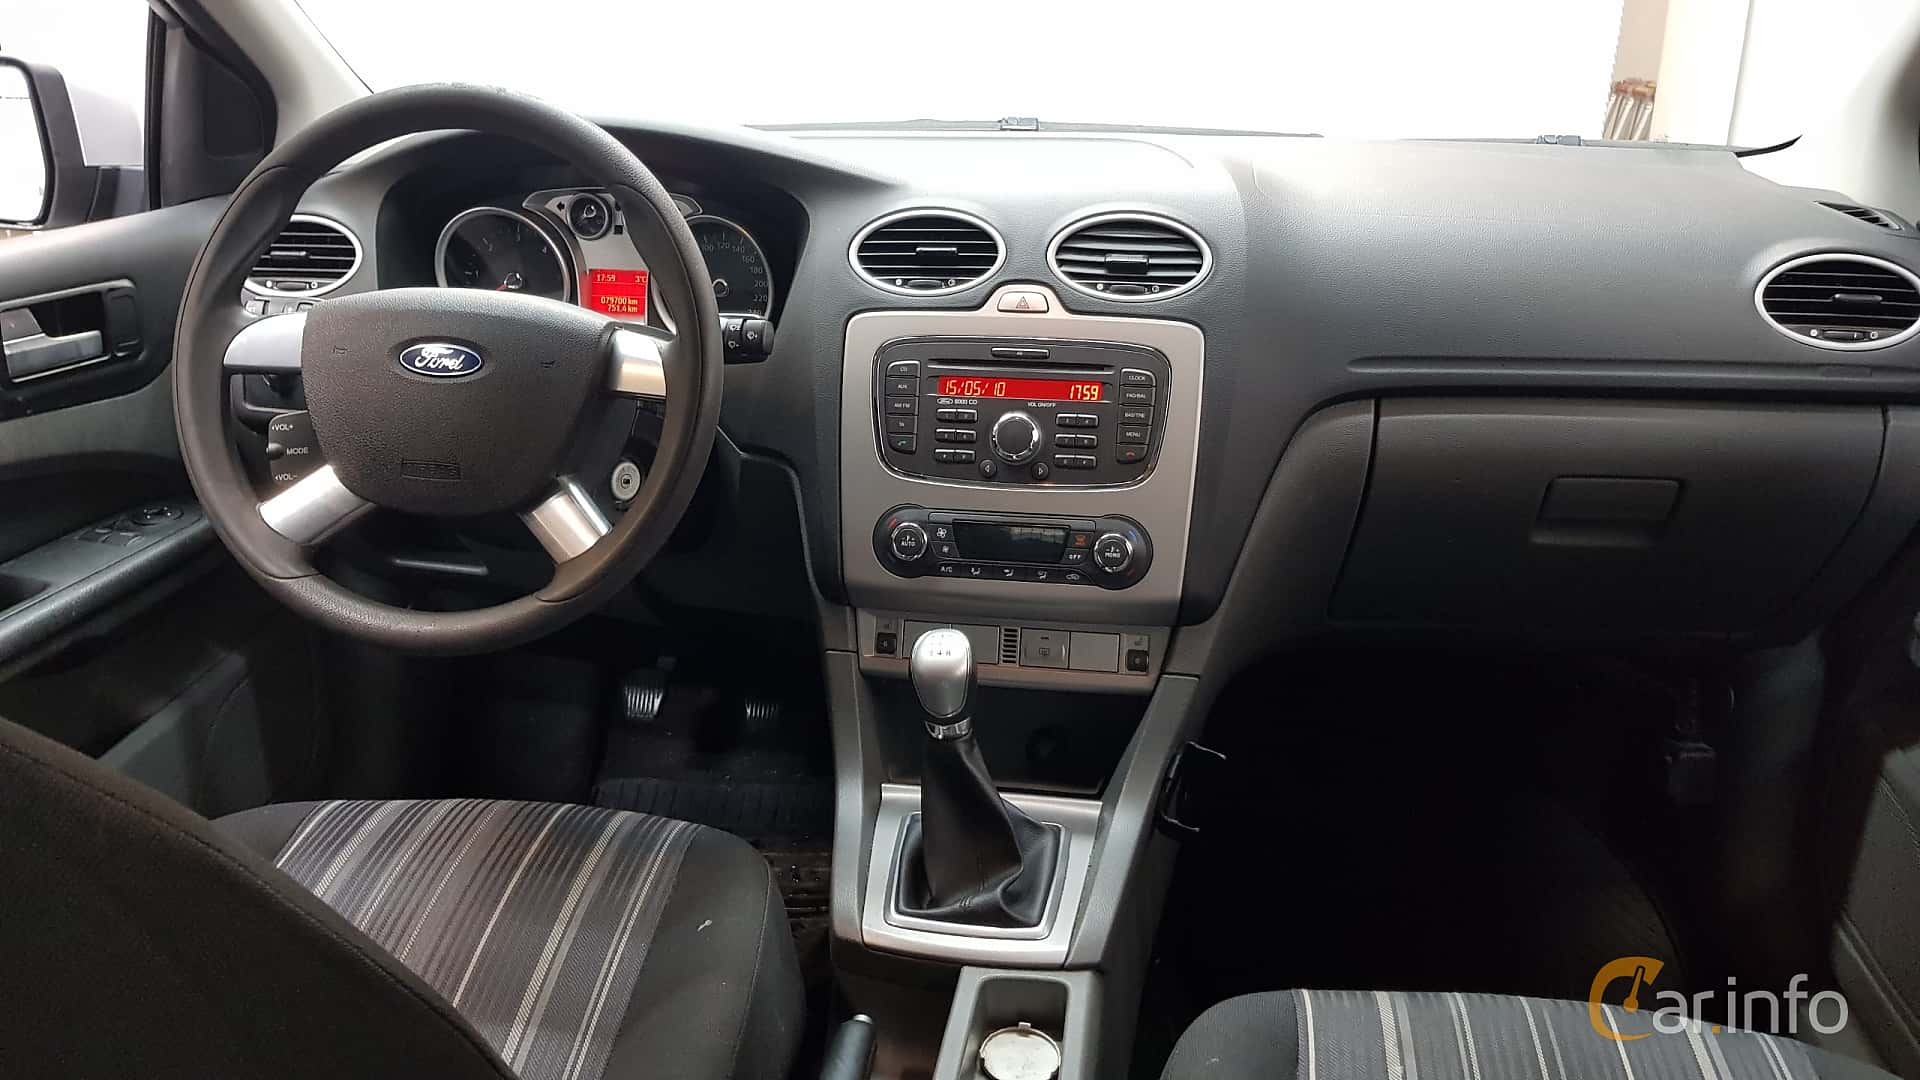 Ford Focus Combi 1 6 Tdci Manual 90hp 2010